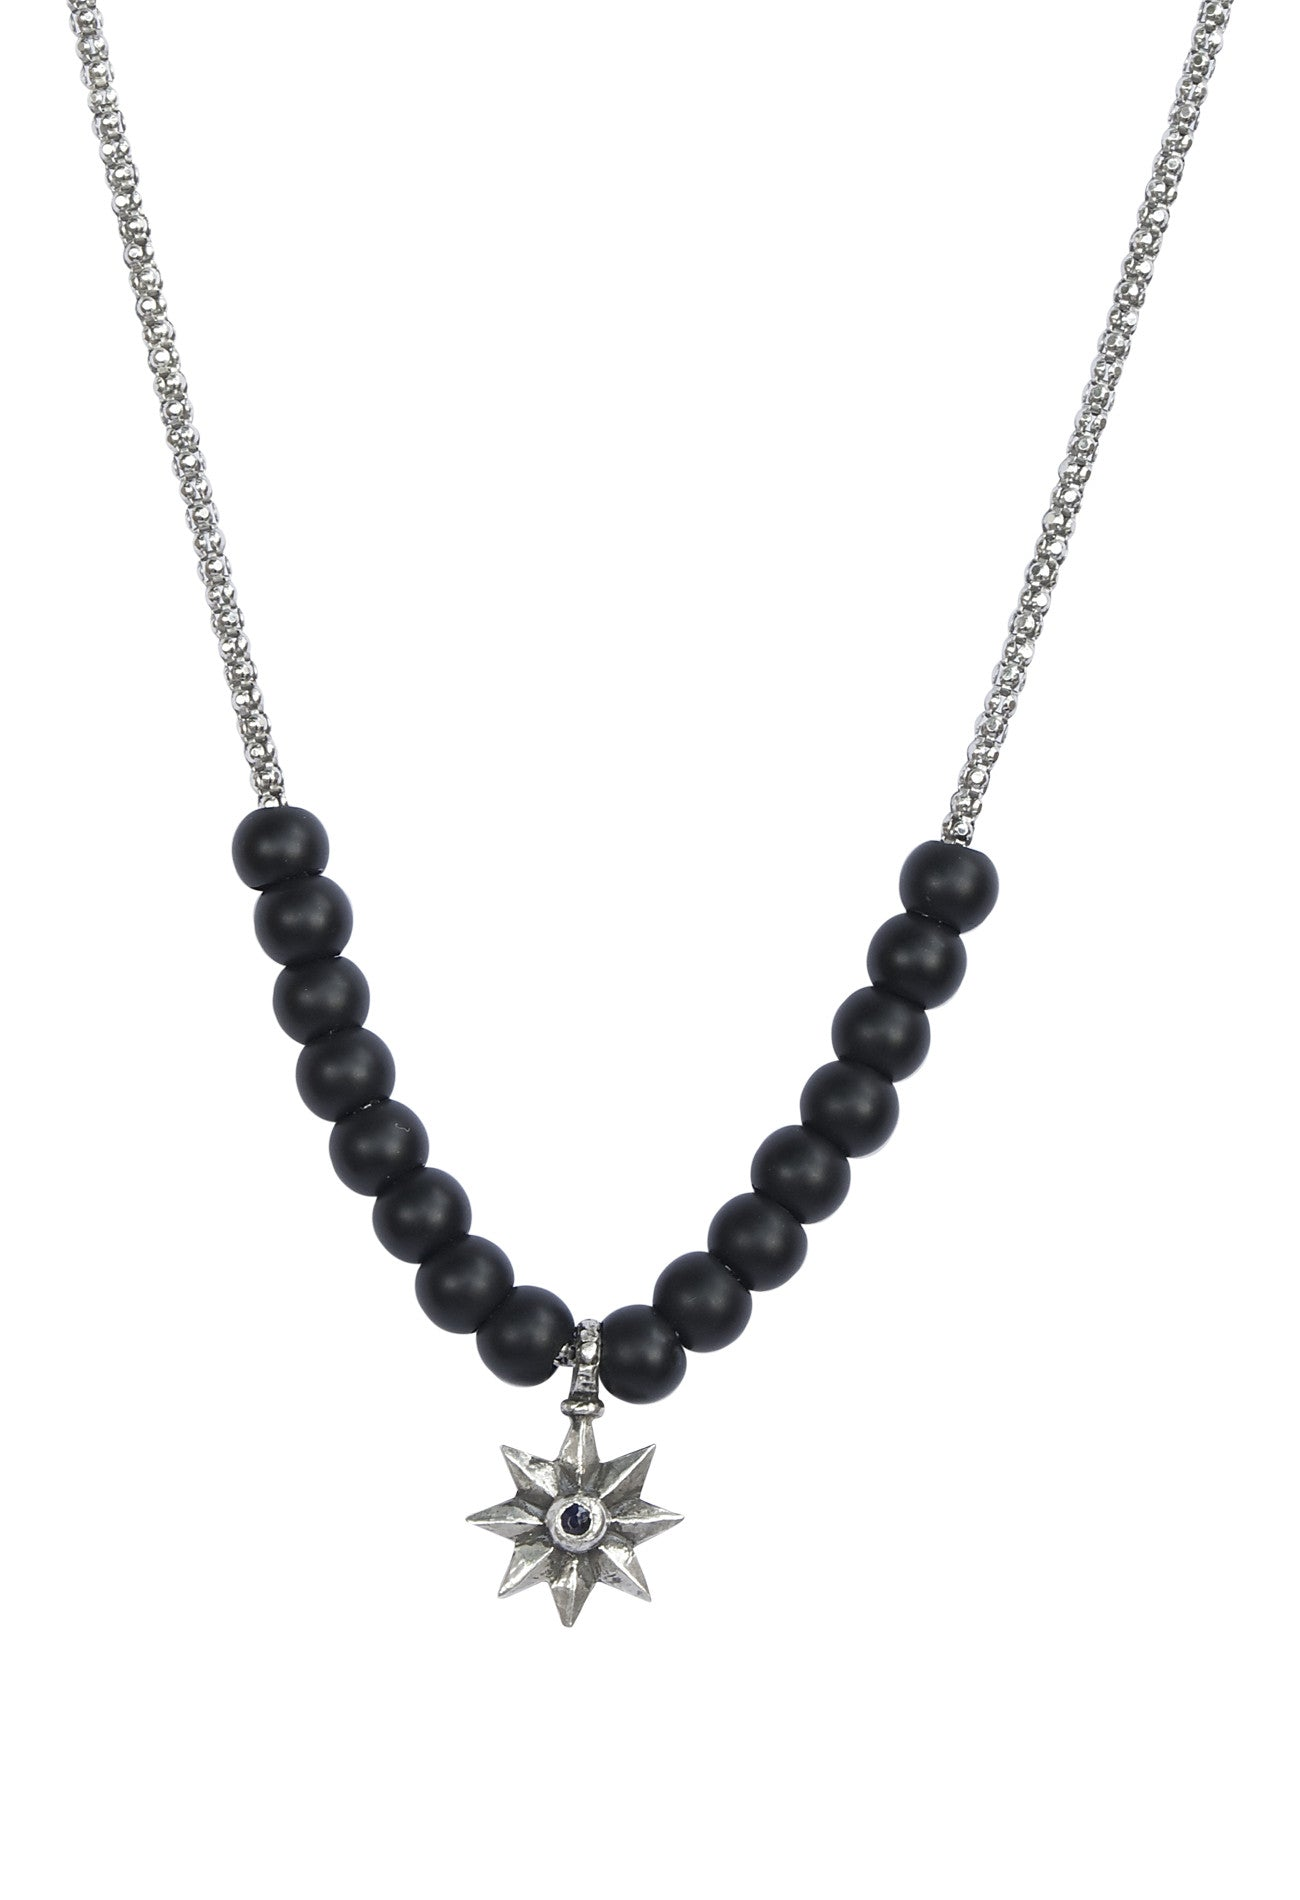 Black Onyx and Sterling Silver Chain Necklace